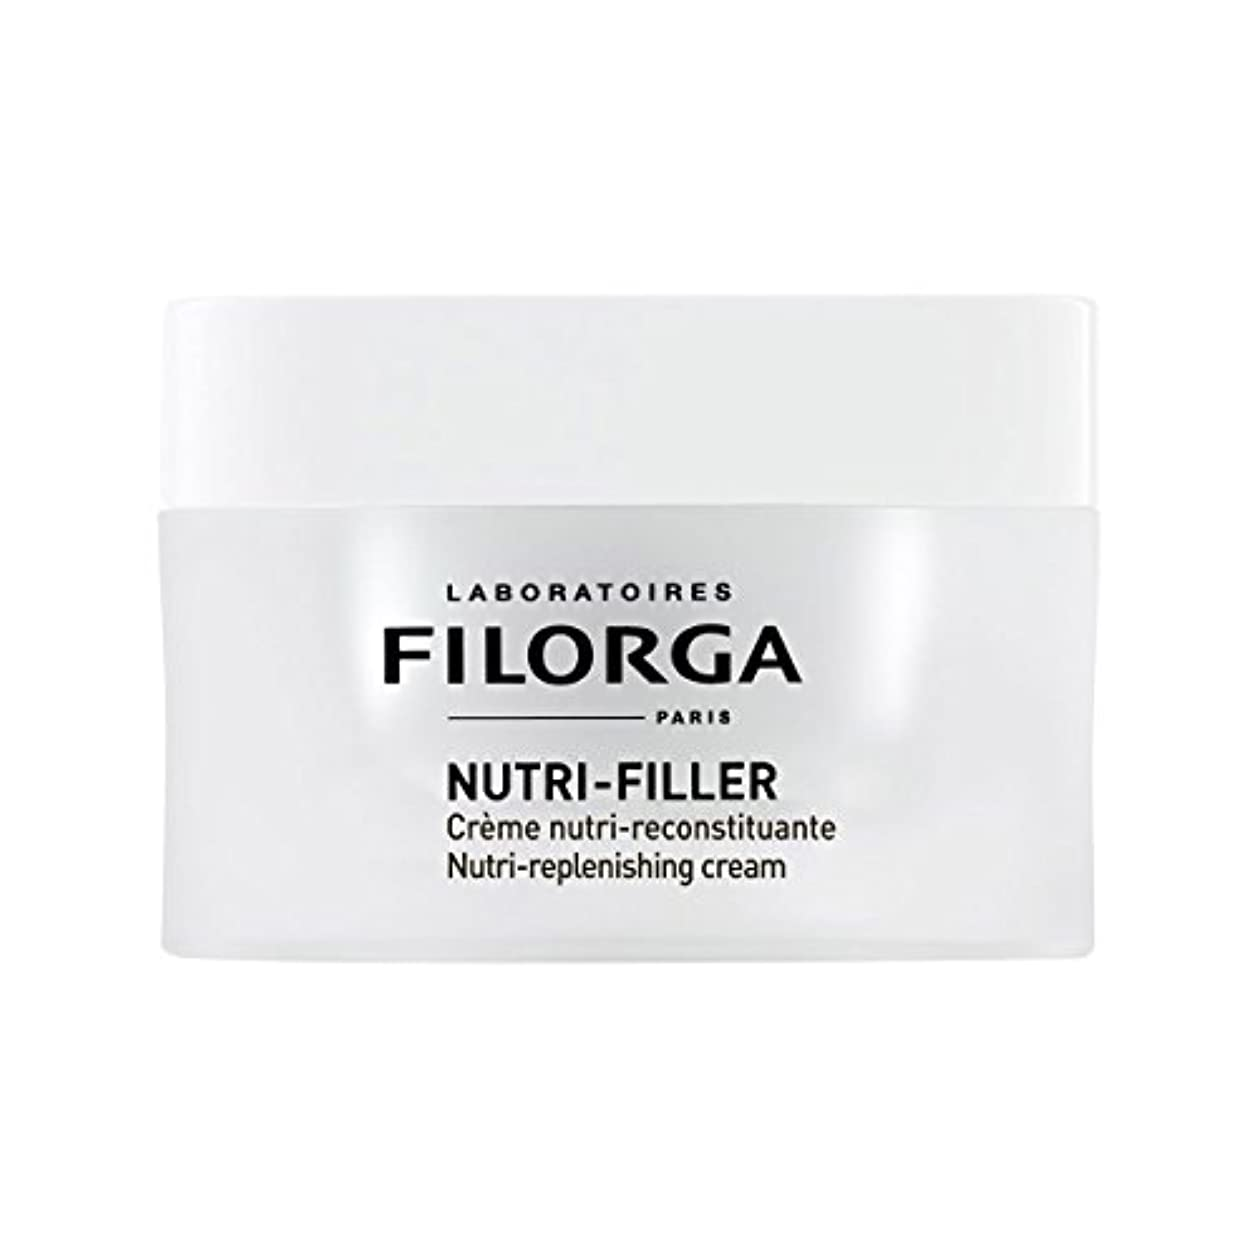 話をする消防士カビFilorga Nutri-filler Nutri-replenishing Cream 50ml [並行輸入品]